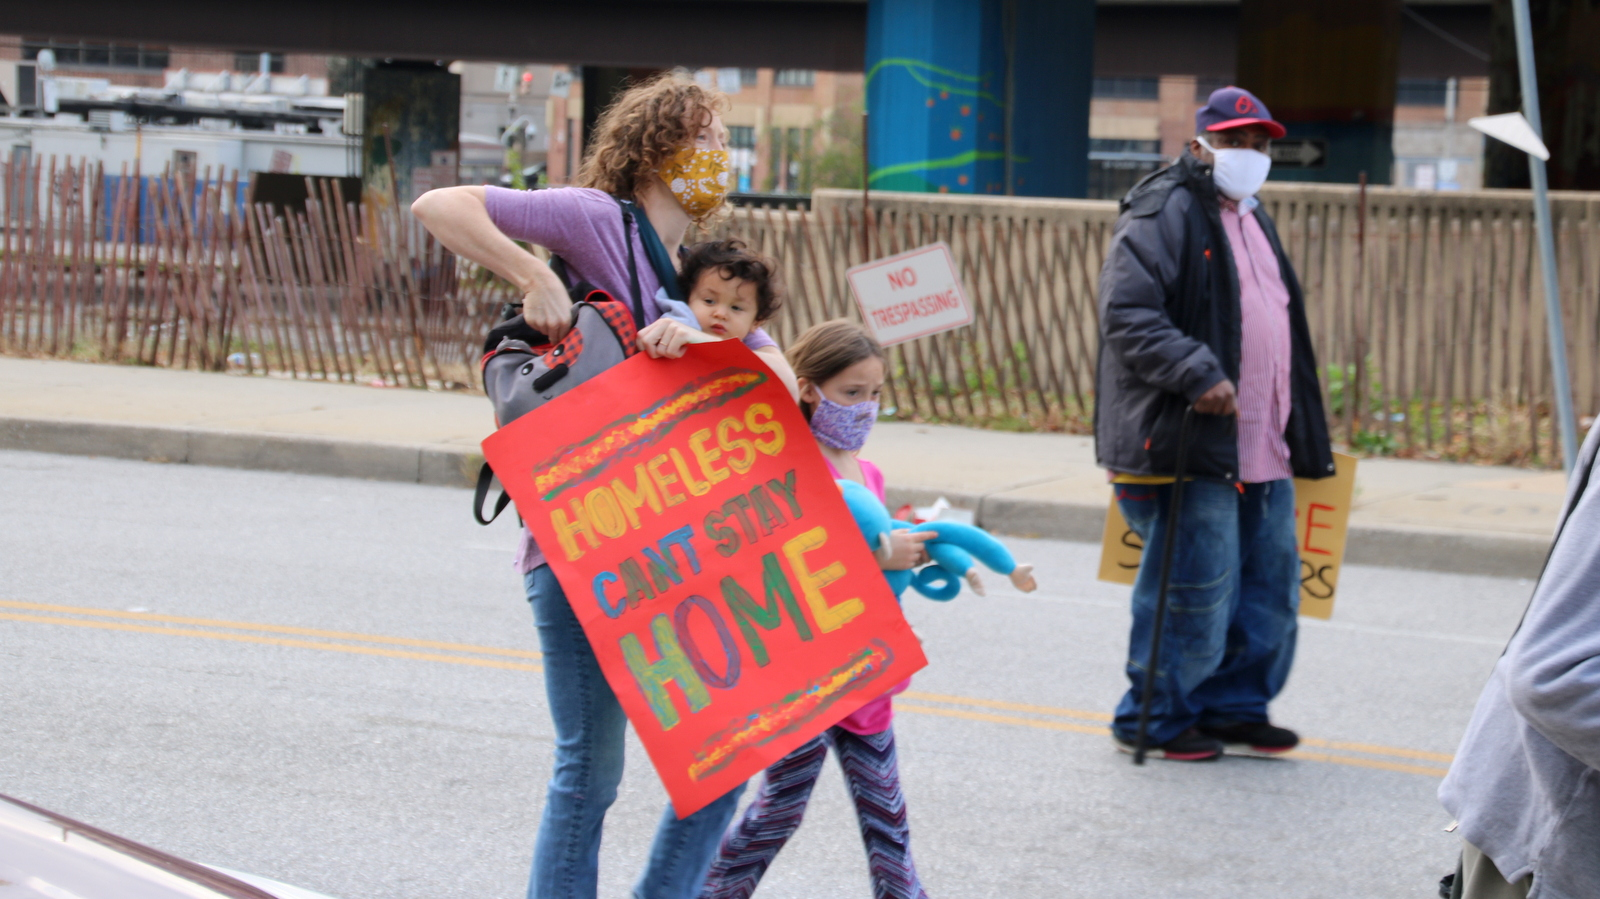 Protesters at a march in Baltimore say, with Covid-19 cases surging, homeless people should not be returned to shelters. (Louis Krauss)